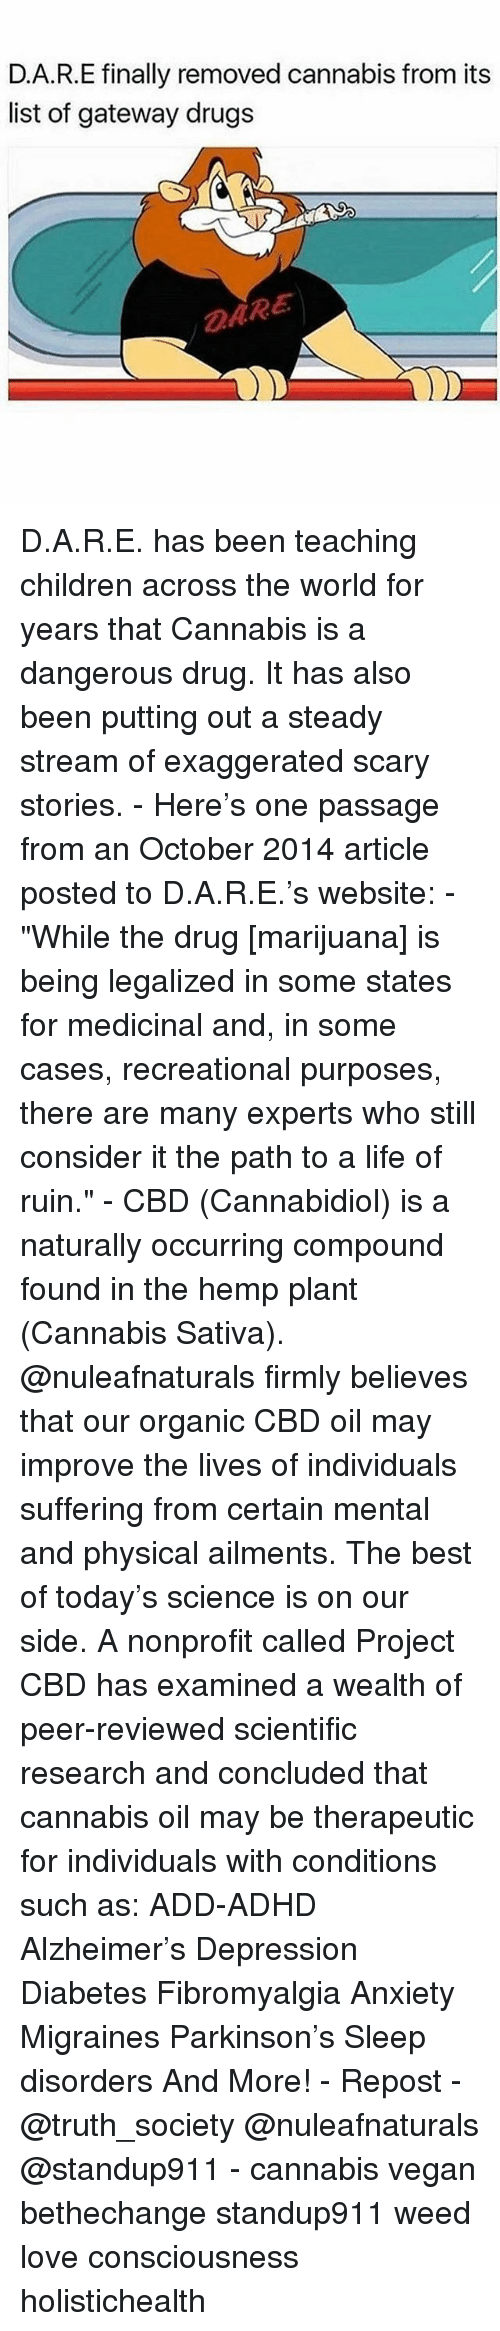 """Children, Drugs, and Life: D.A.R.E finally removed cannabis from its  list of gateway drugs  ARE D.A.R.E. has been teaching children across the world for years that Cannabis is a dangerous drug. It has also been putting out a steady stream of exaggerated scary stories. - Here's one passage from an October 2014 article posted to D.A.R.E.'s website: - """"While the drug [marijuana] is being legalized in some states for medicinal and, in some cases, recreational purposes, there are many experts who still consider it the path to a life of ruin."""" - CBD (Cannabidiol) is a naturally occurring compound found in the hemp plant (Cannabis Sativa). @nuleafnaturals firmly believes that our organic CBD oil may improve the lives of individuals suffering from certain mental and physical ailments. The best of today's science is on our side. A nonprofit called Project CBD has examined a wealth of peer-reviewed scientific research and concluded that cannabis oil may be therapeutic for individuals with conditions such as: ADD-ADHD Alzheimer's Depression Diabetes Fibromyalgia Anxiety Migraines Parkinson's Sleep disorders And More! - Repost - @truth_society @nuleafnaturals @standup911 - cannabis vegan bethechange standup911 weed love consciousness holistichealth"""